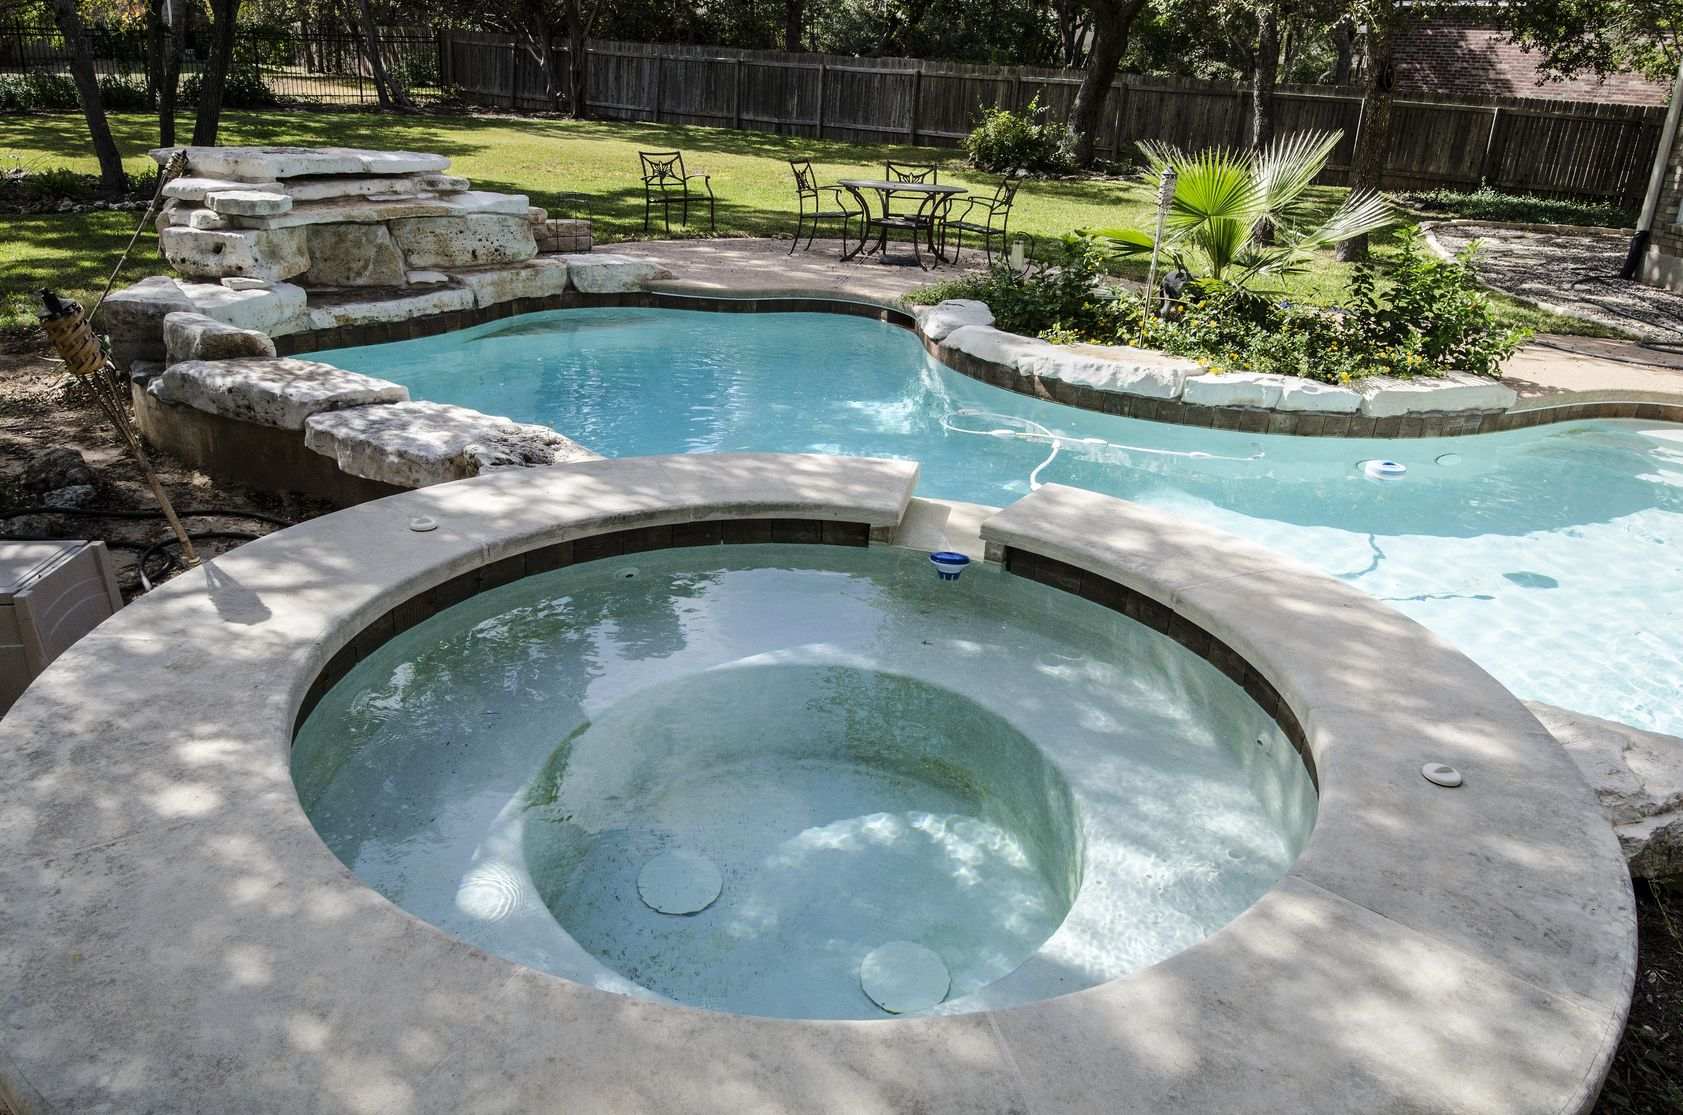 pool care pool equipment check hot tub get hot tub ready for winter 536